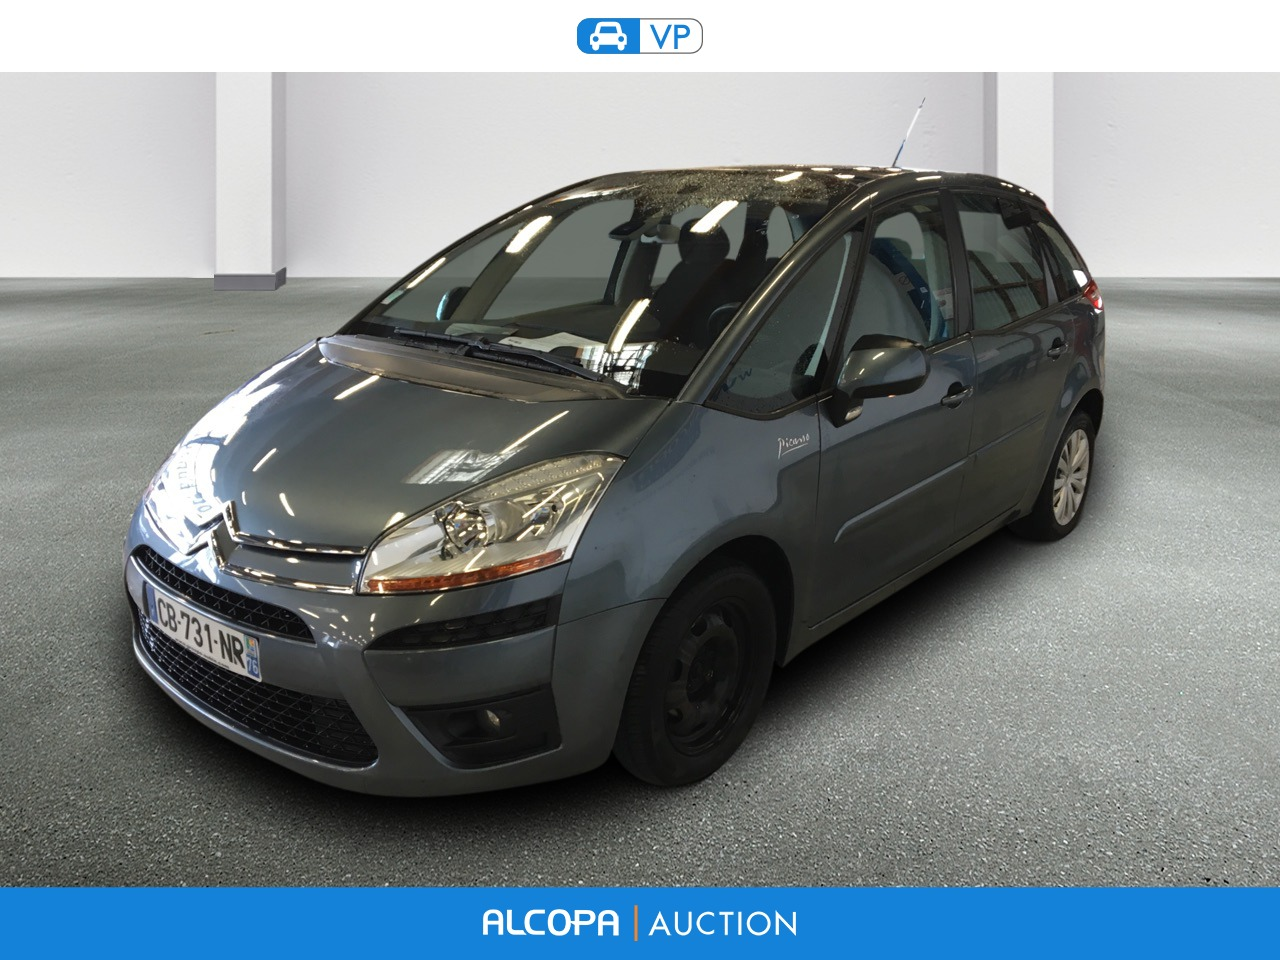 citroen c4 picasso 01 2007 07 2013 c4 picasso hdi 110 fap pack ambiance alcopa auction. Black Bedroom Furniture Sets. Home Design Ideas